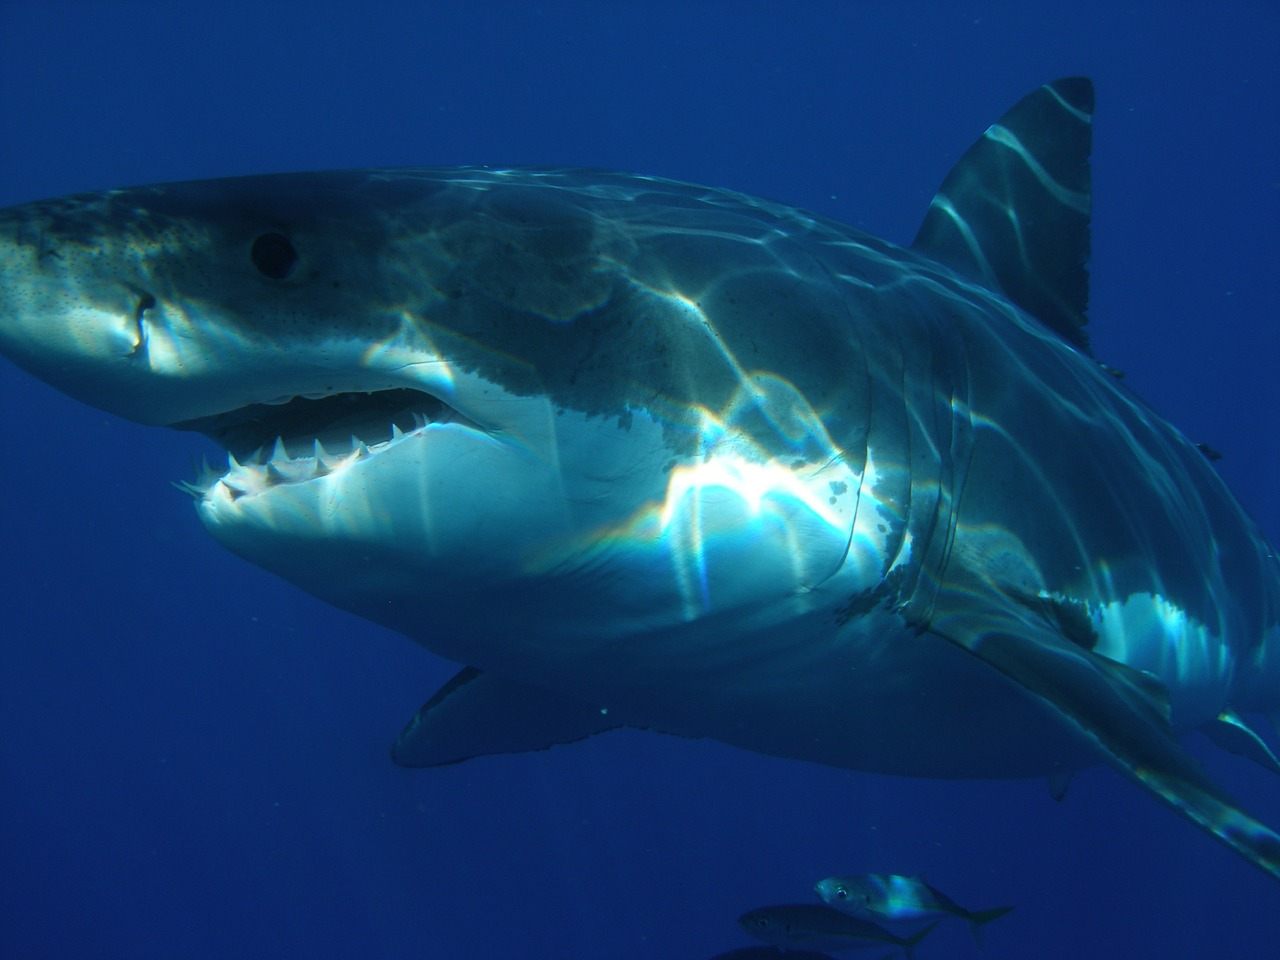 There are an estimated 500 species of sharks on the planet. (Image: pixabay / CC0 1.0)